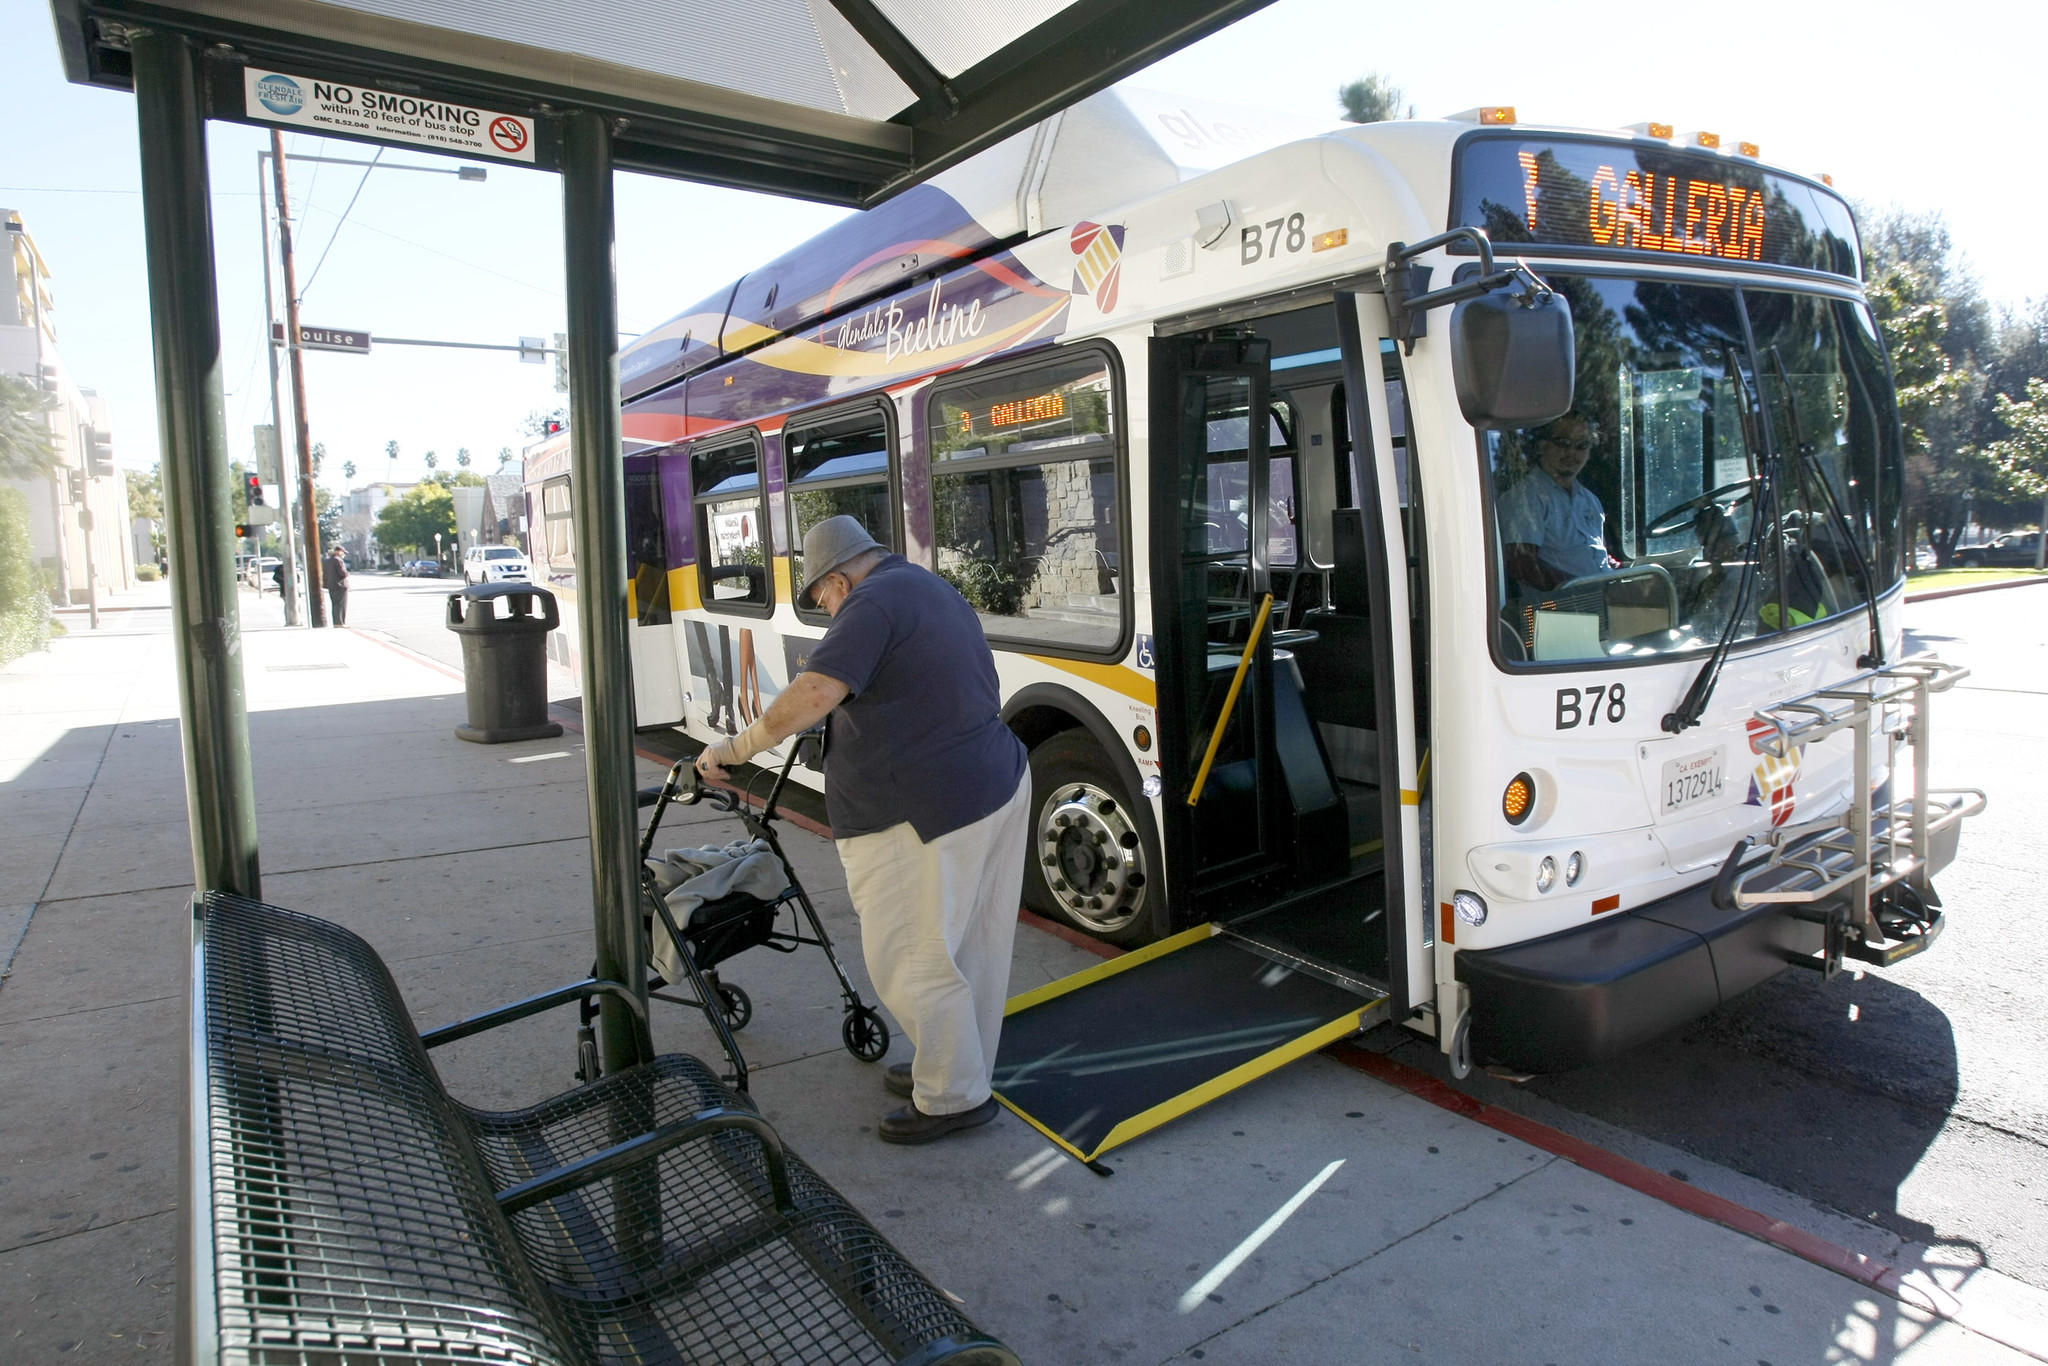 A passenger gets off the #3 Beeline bus at Broadway and Louise in Glendale on Tuesday, Dec. 24, 2013.